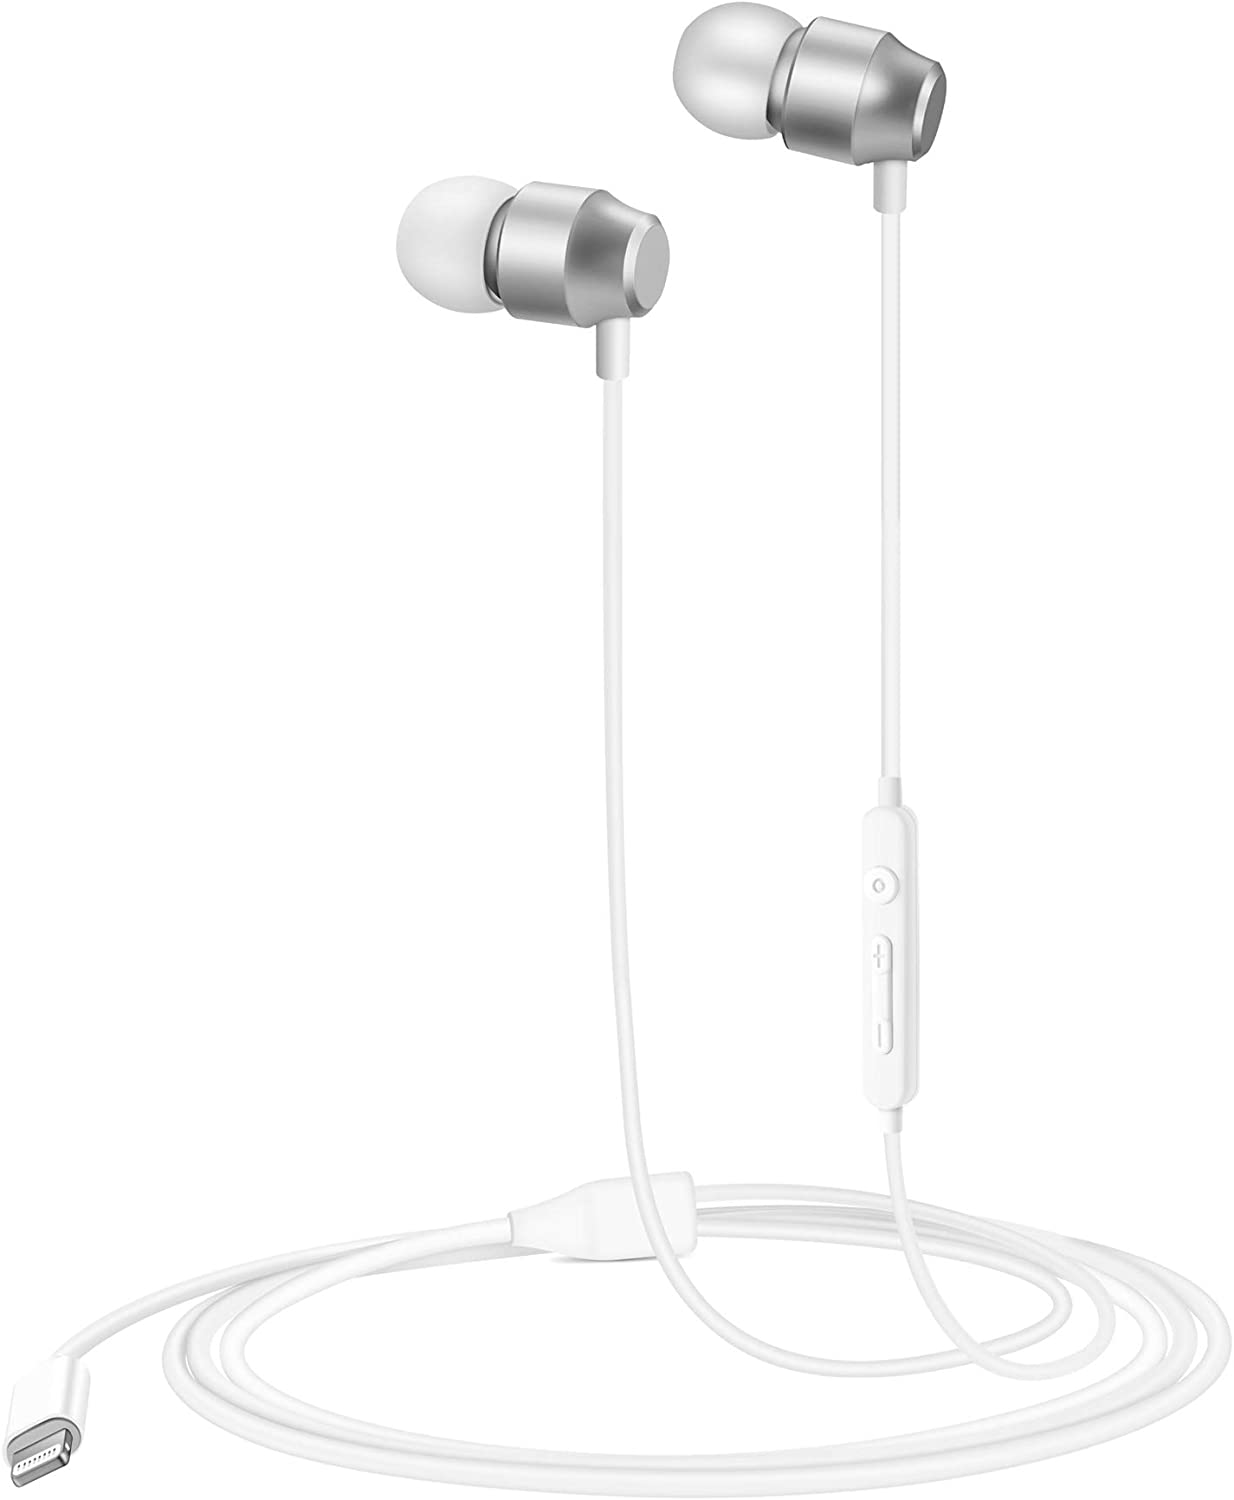 PALOVUE Earflow in-Ear Lightning Headphones Magnetic Earphones MFi Certified Earbuds with Microphone Controller Compatible iPhone 12/11/X/XS/XS Max/XR iPhone 8/P iPhone 7/P (Metallic Silver)